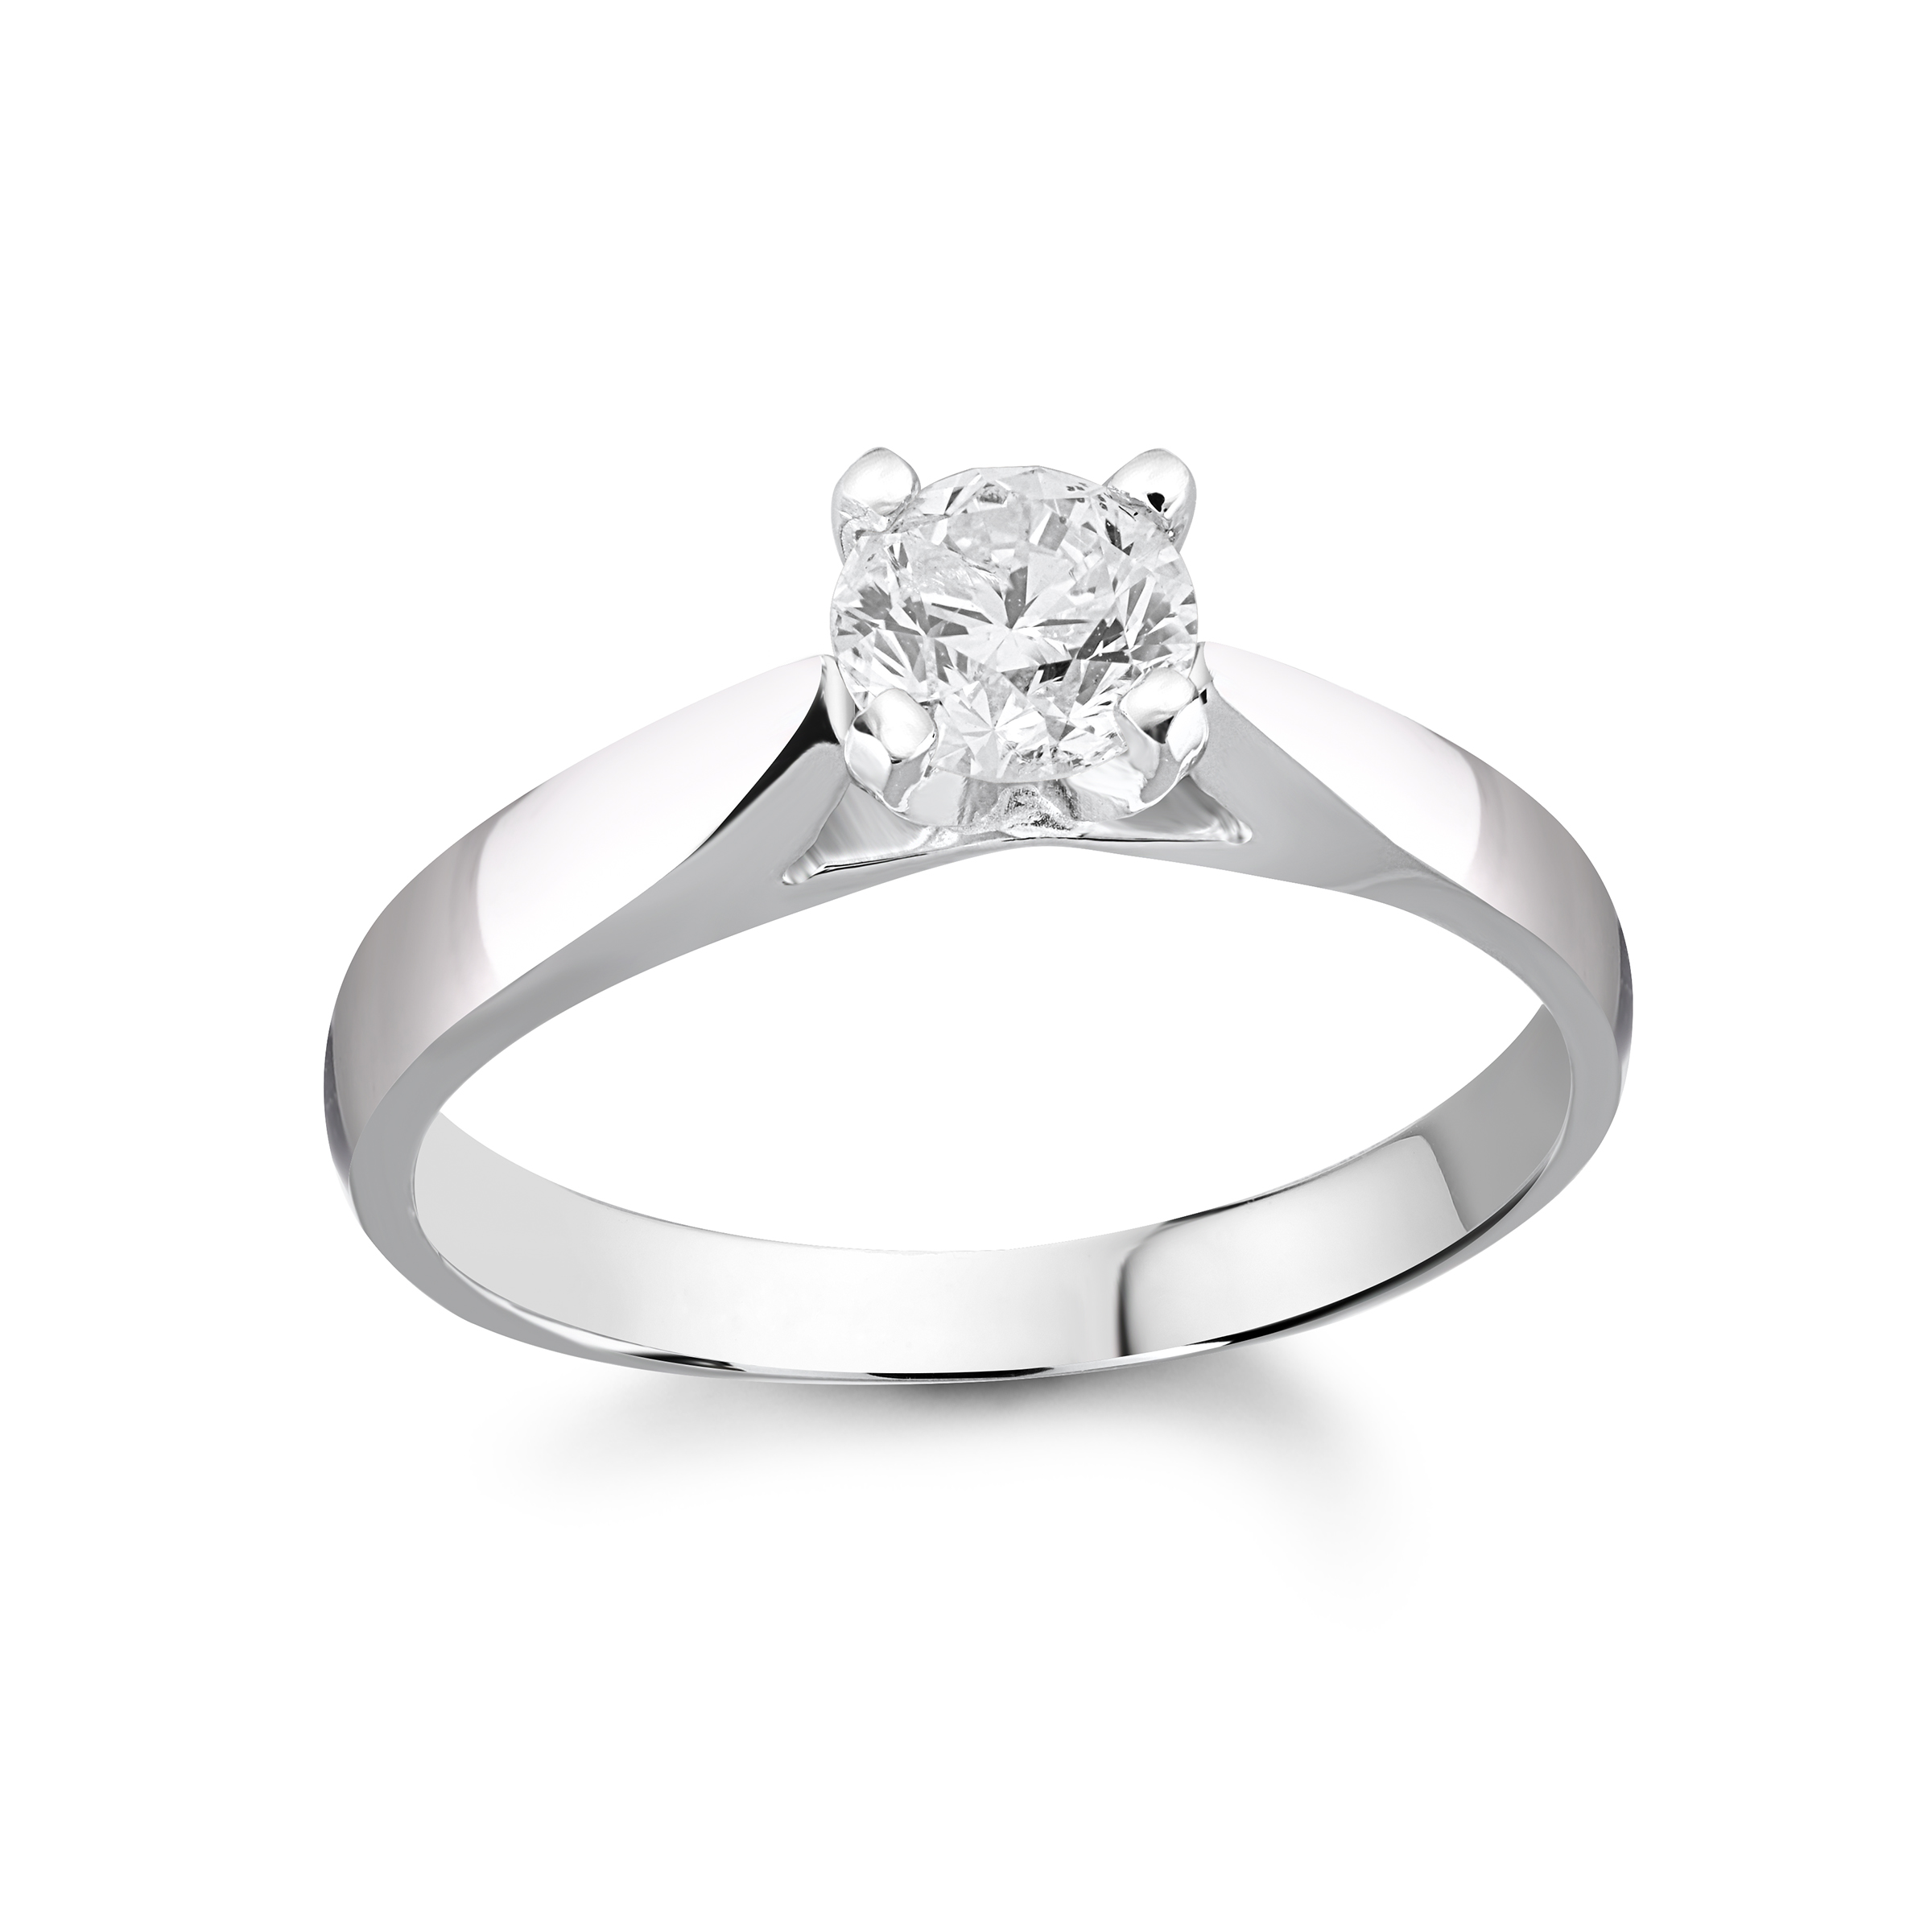 Engagement ring - 14K white Gold & Solitaire diamond 1.00 Carat T.W.